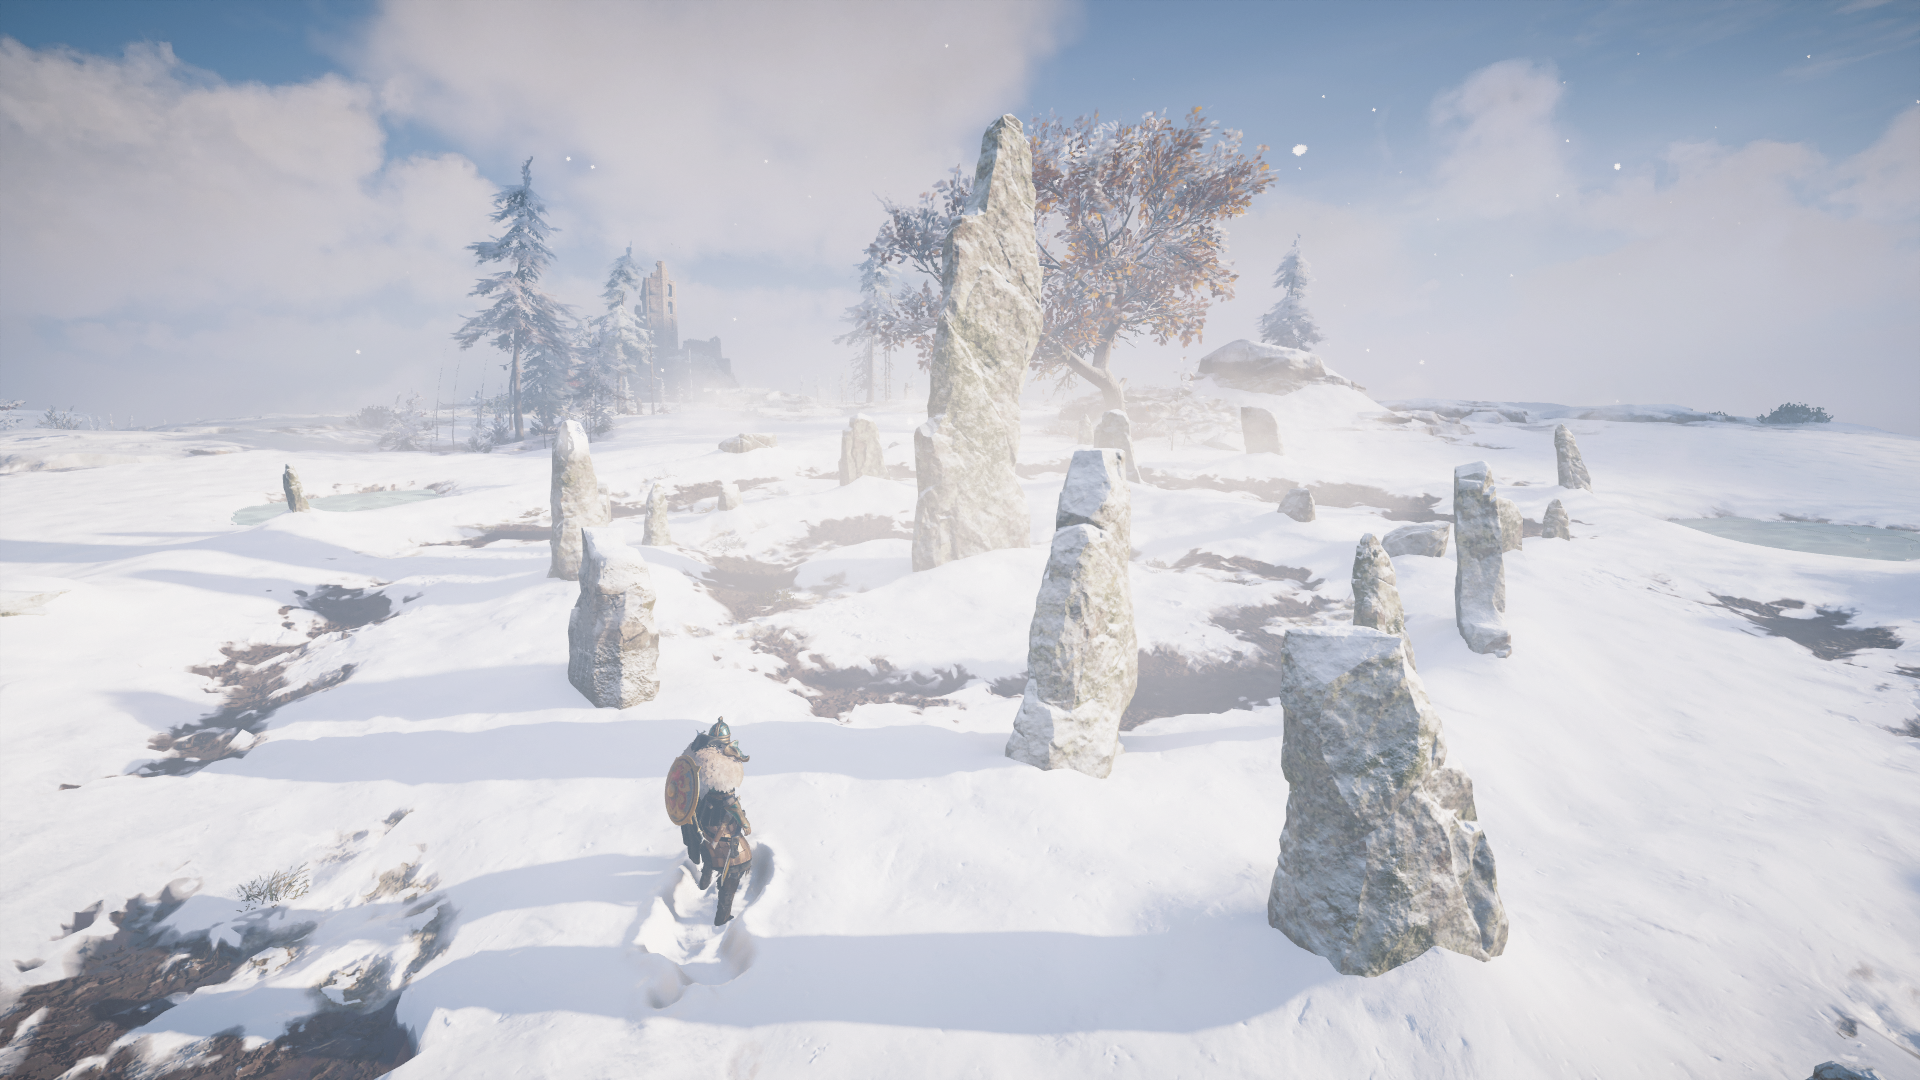 Assassin's Creed Valhalla guide: All Euriviscire Wealth, Mysteries, and Artifacts